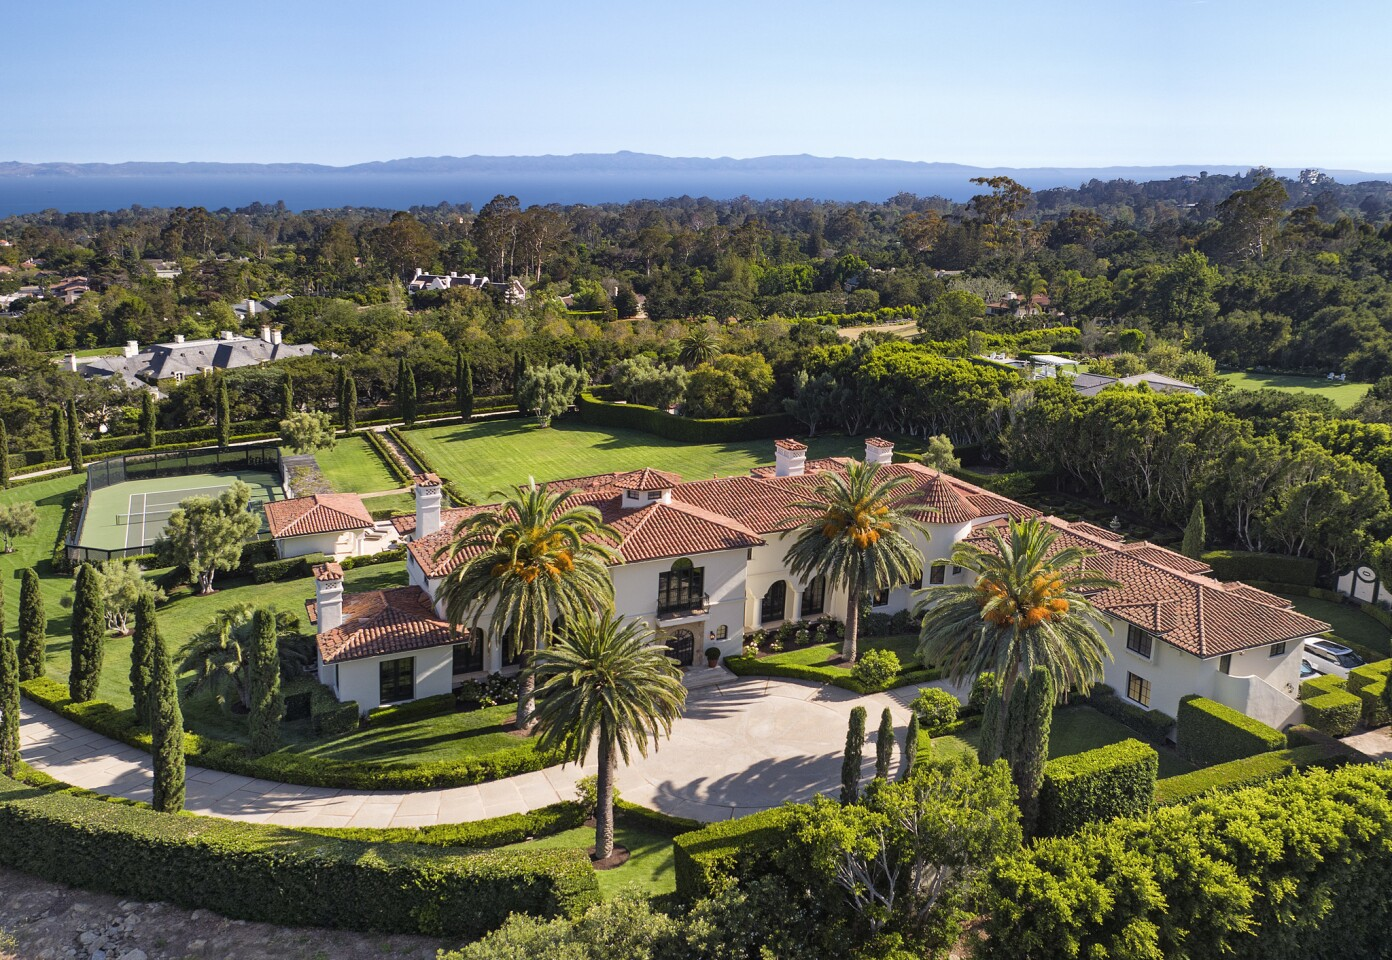 Home of the Day: Life on a grand scale in Montecito